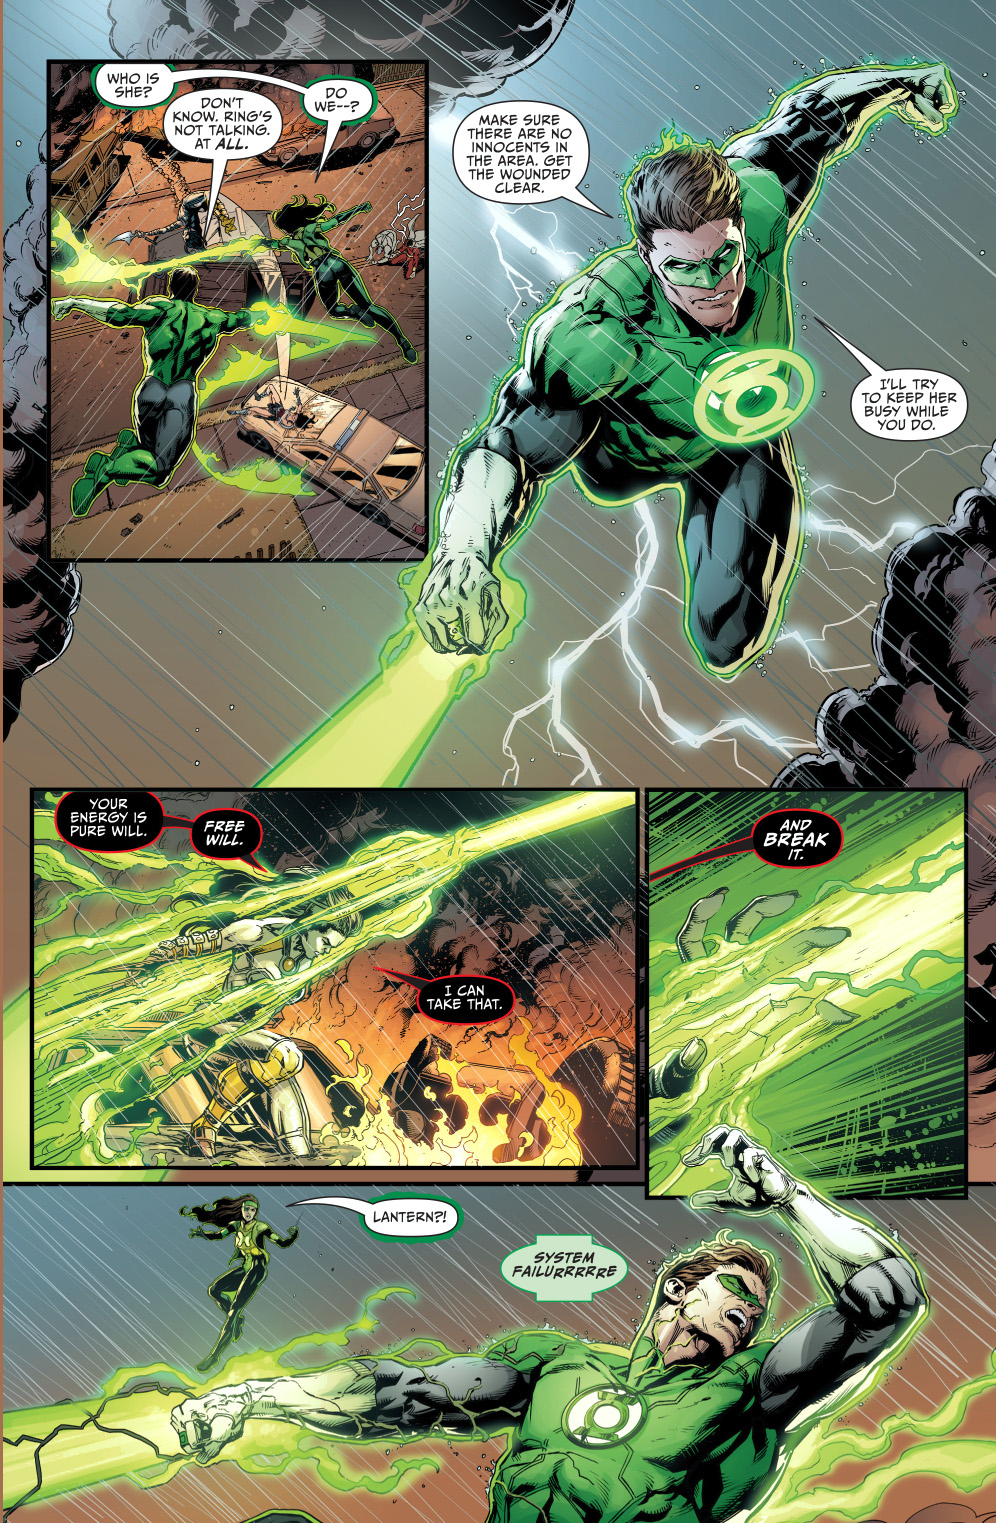 grail takes out green lantern and power ring